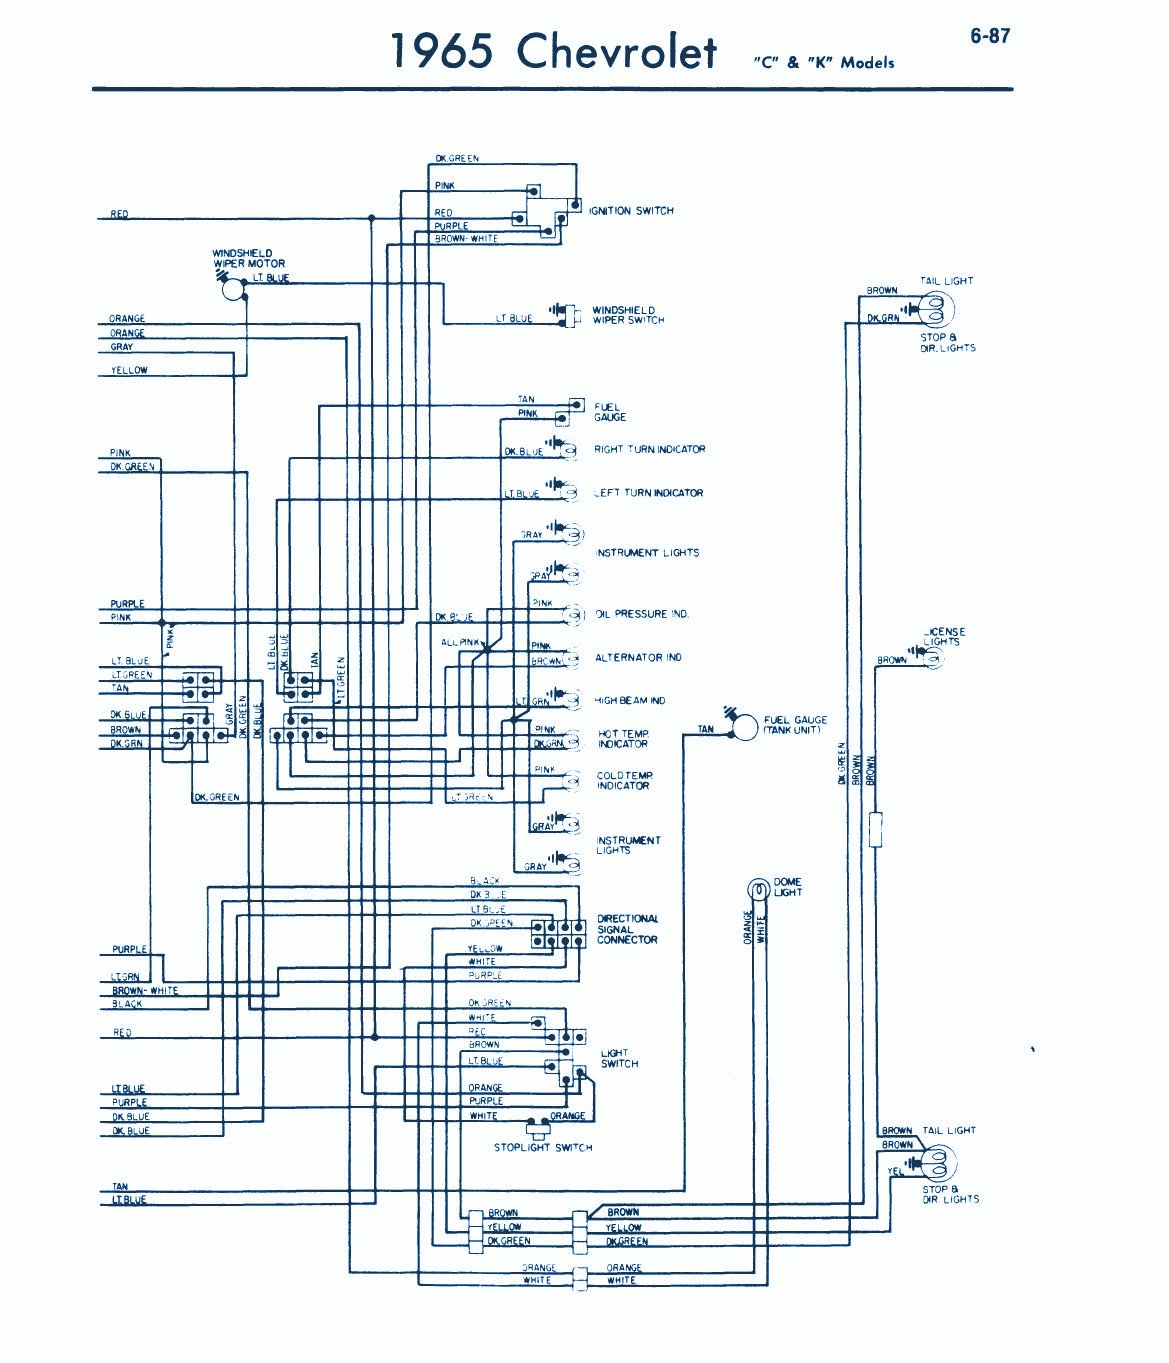 1965 chevrolet wiring diagram auto wiring diagrams